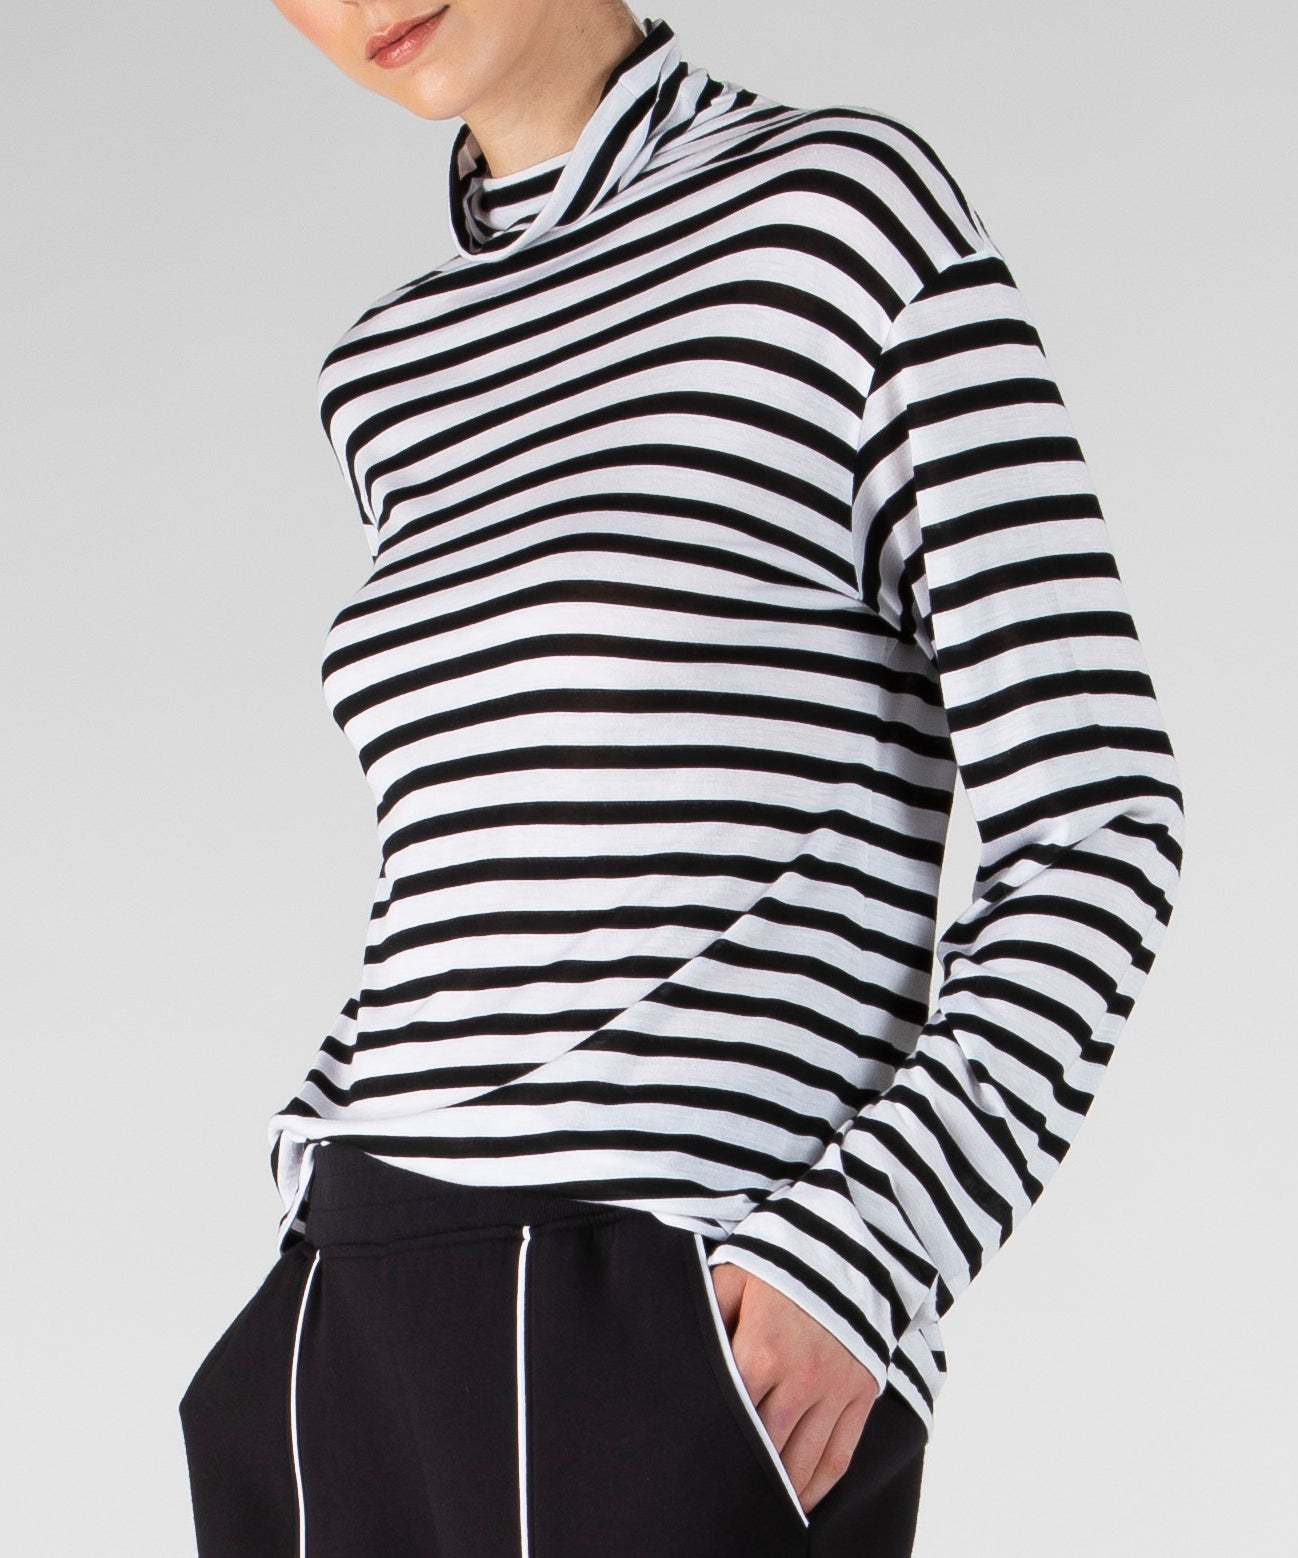 Black and White Stripe Modal Jersey Long Sleeve Mock Neck Top - Women's Luxe Top ATM Anthony Thomas Melillo